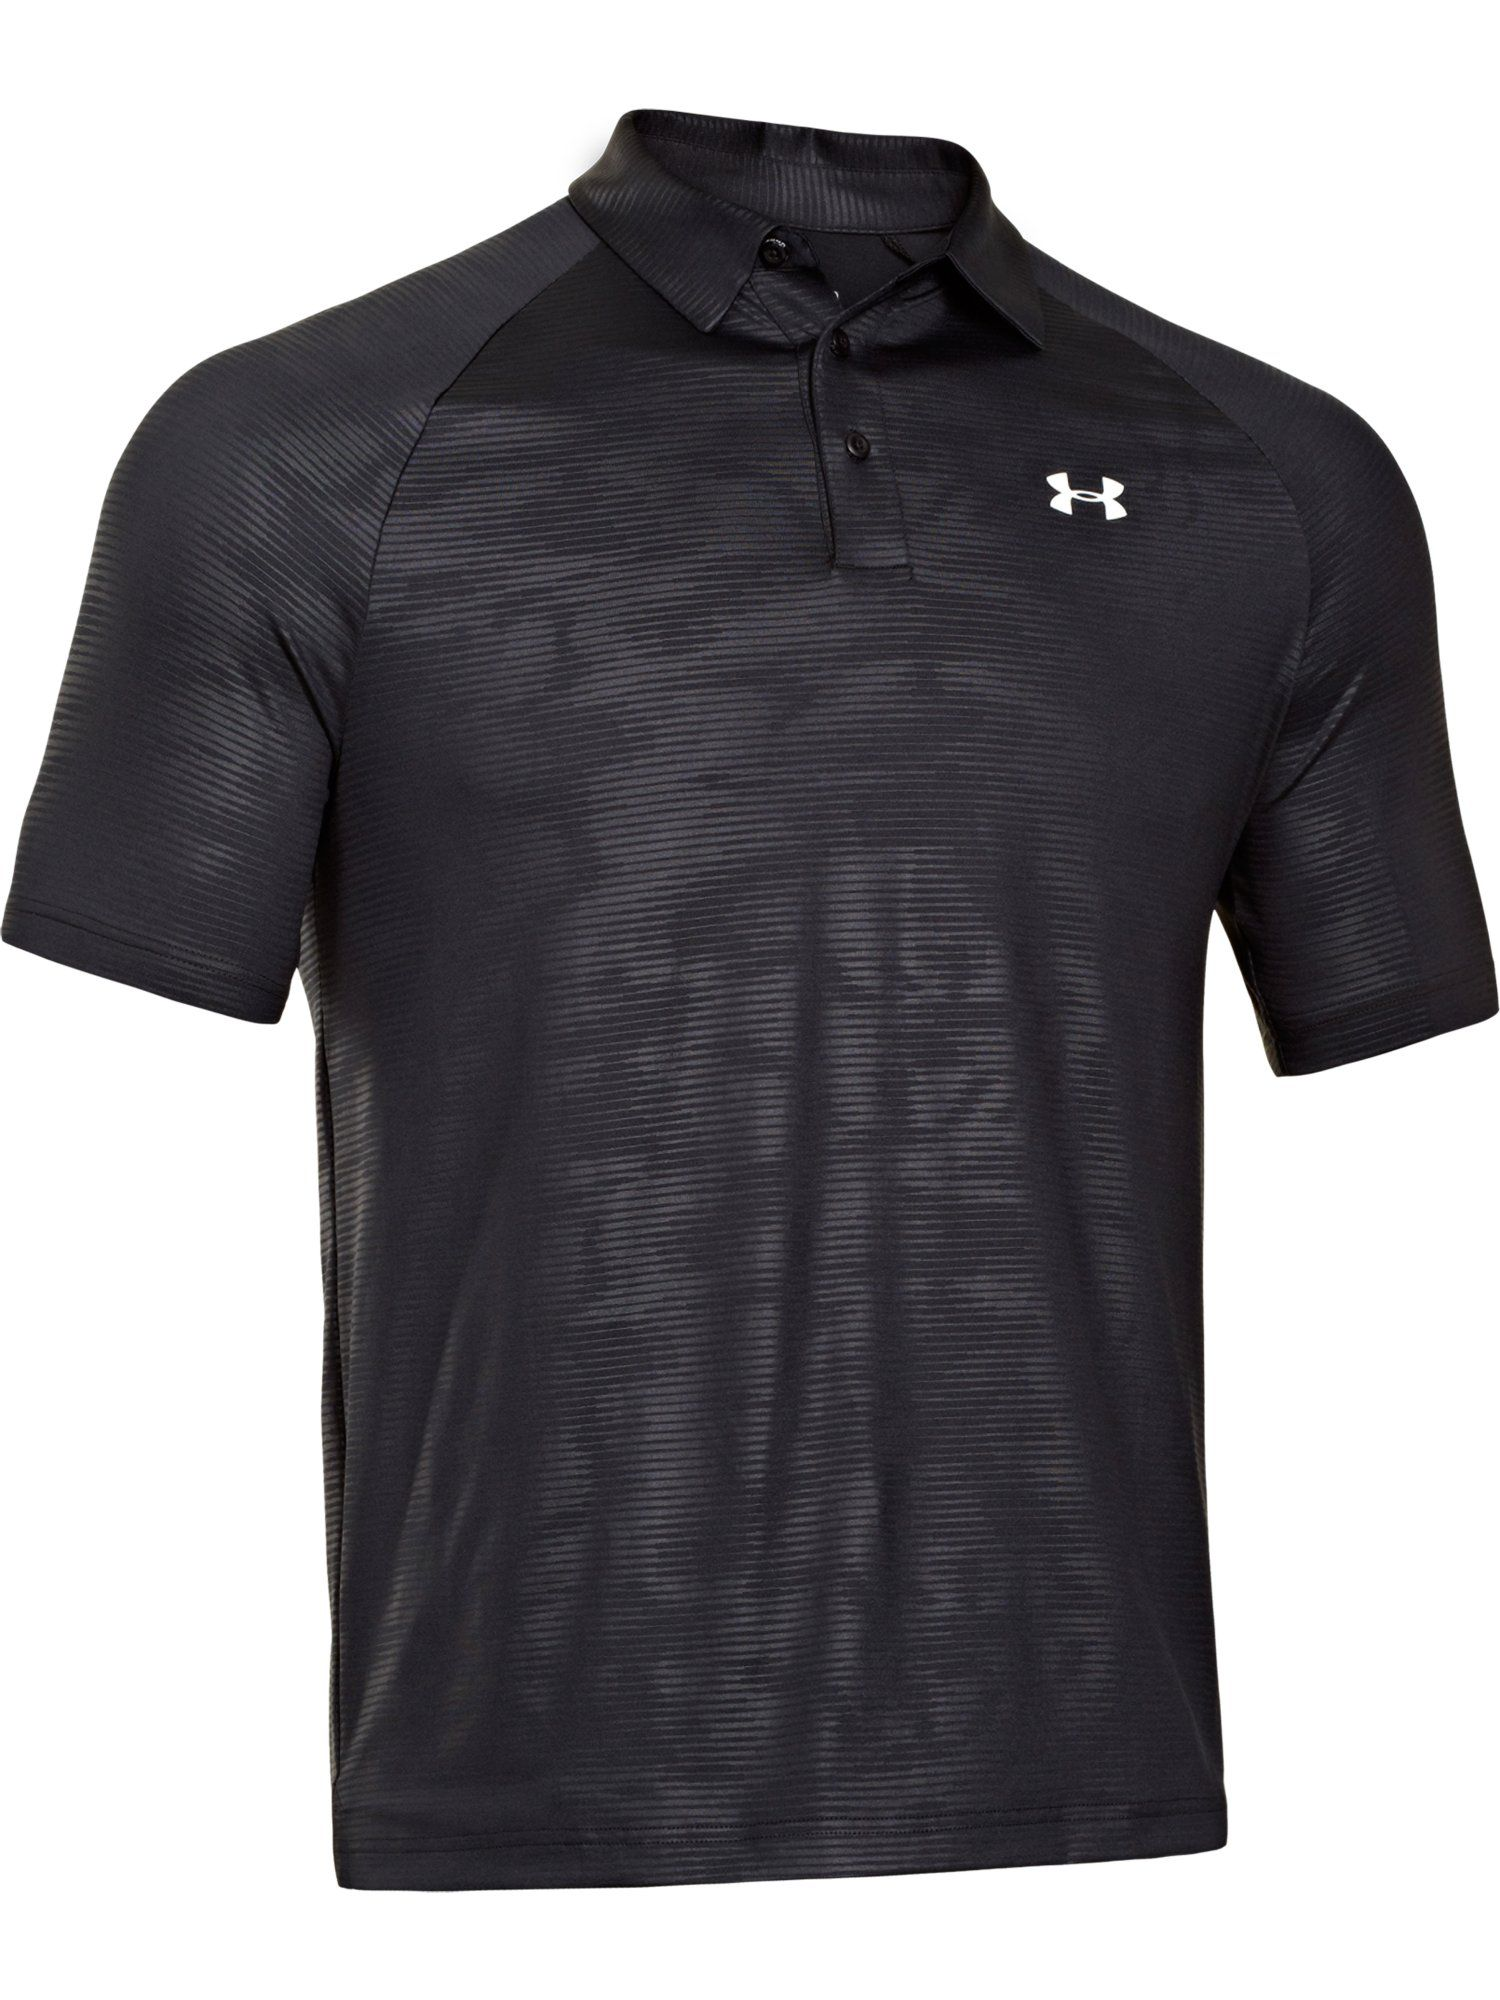 Coldblack embossed polo